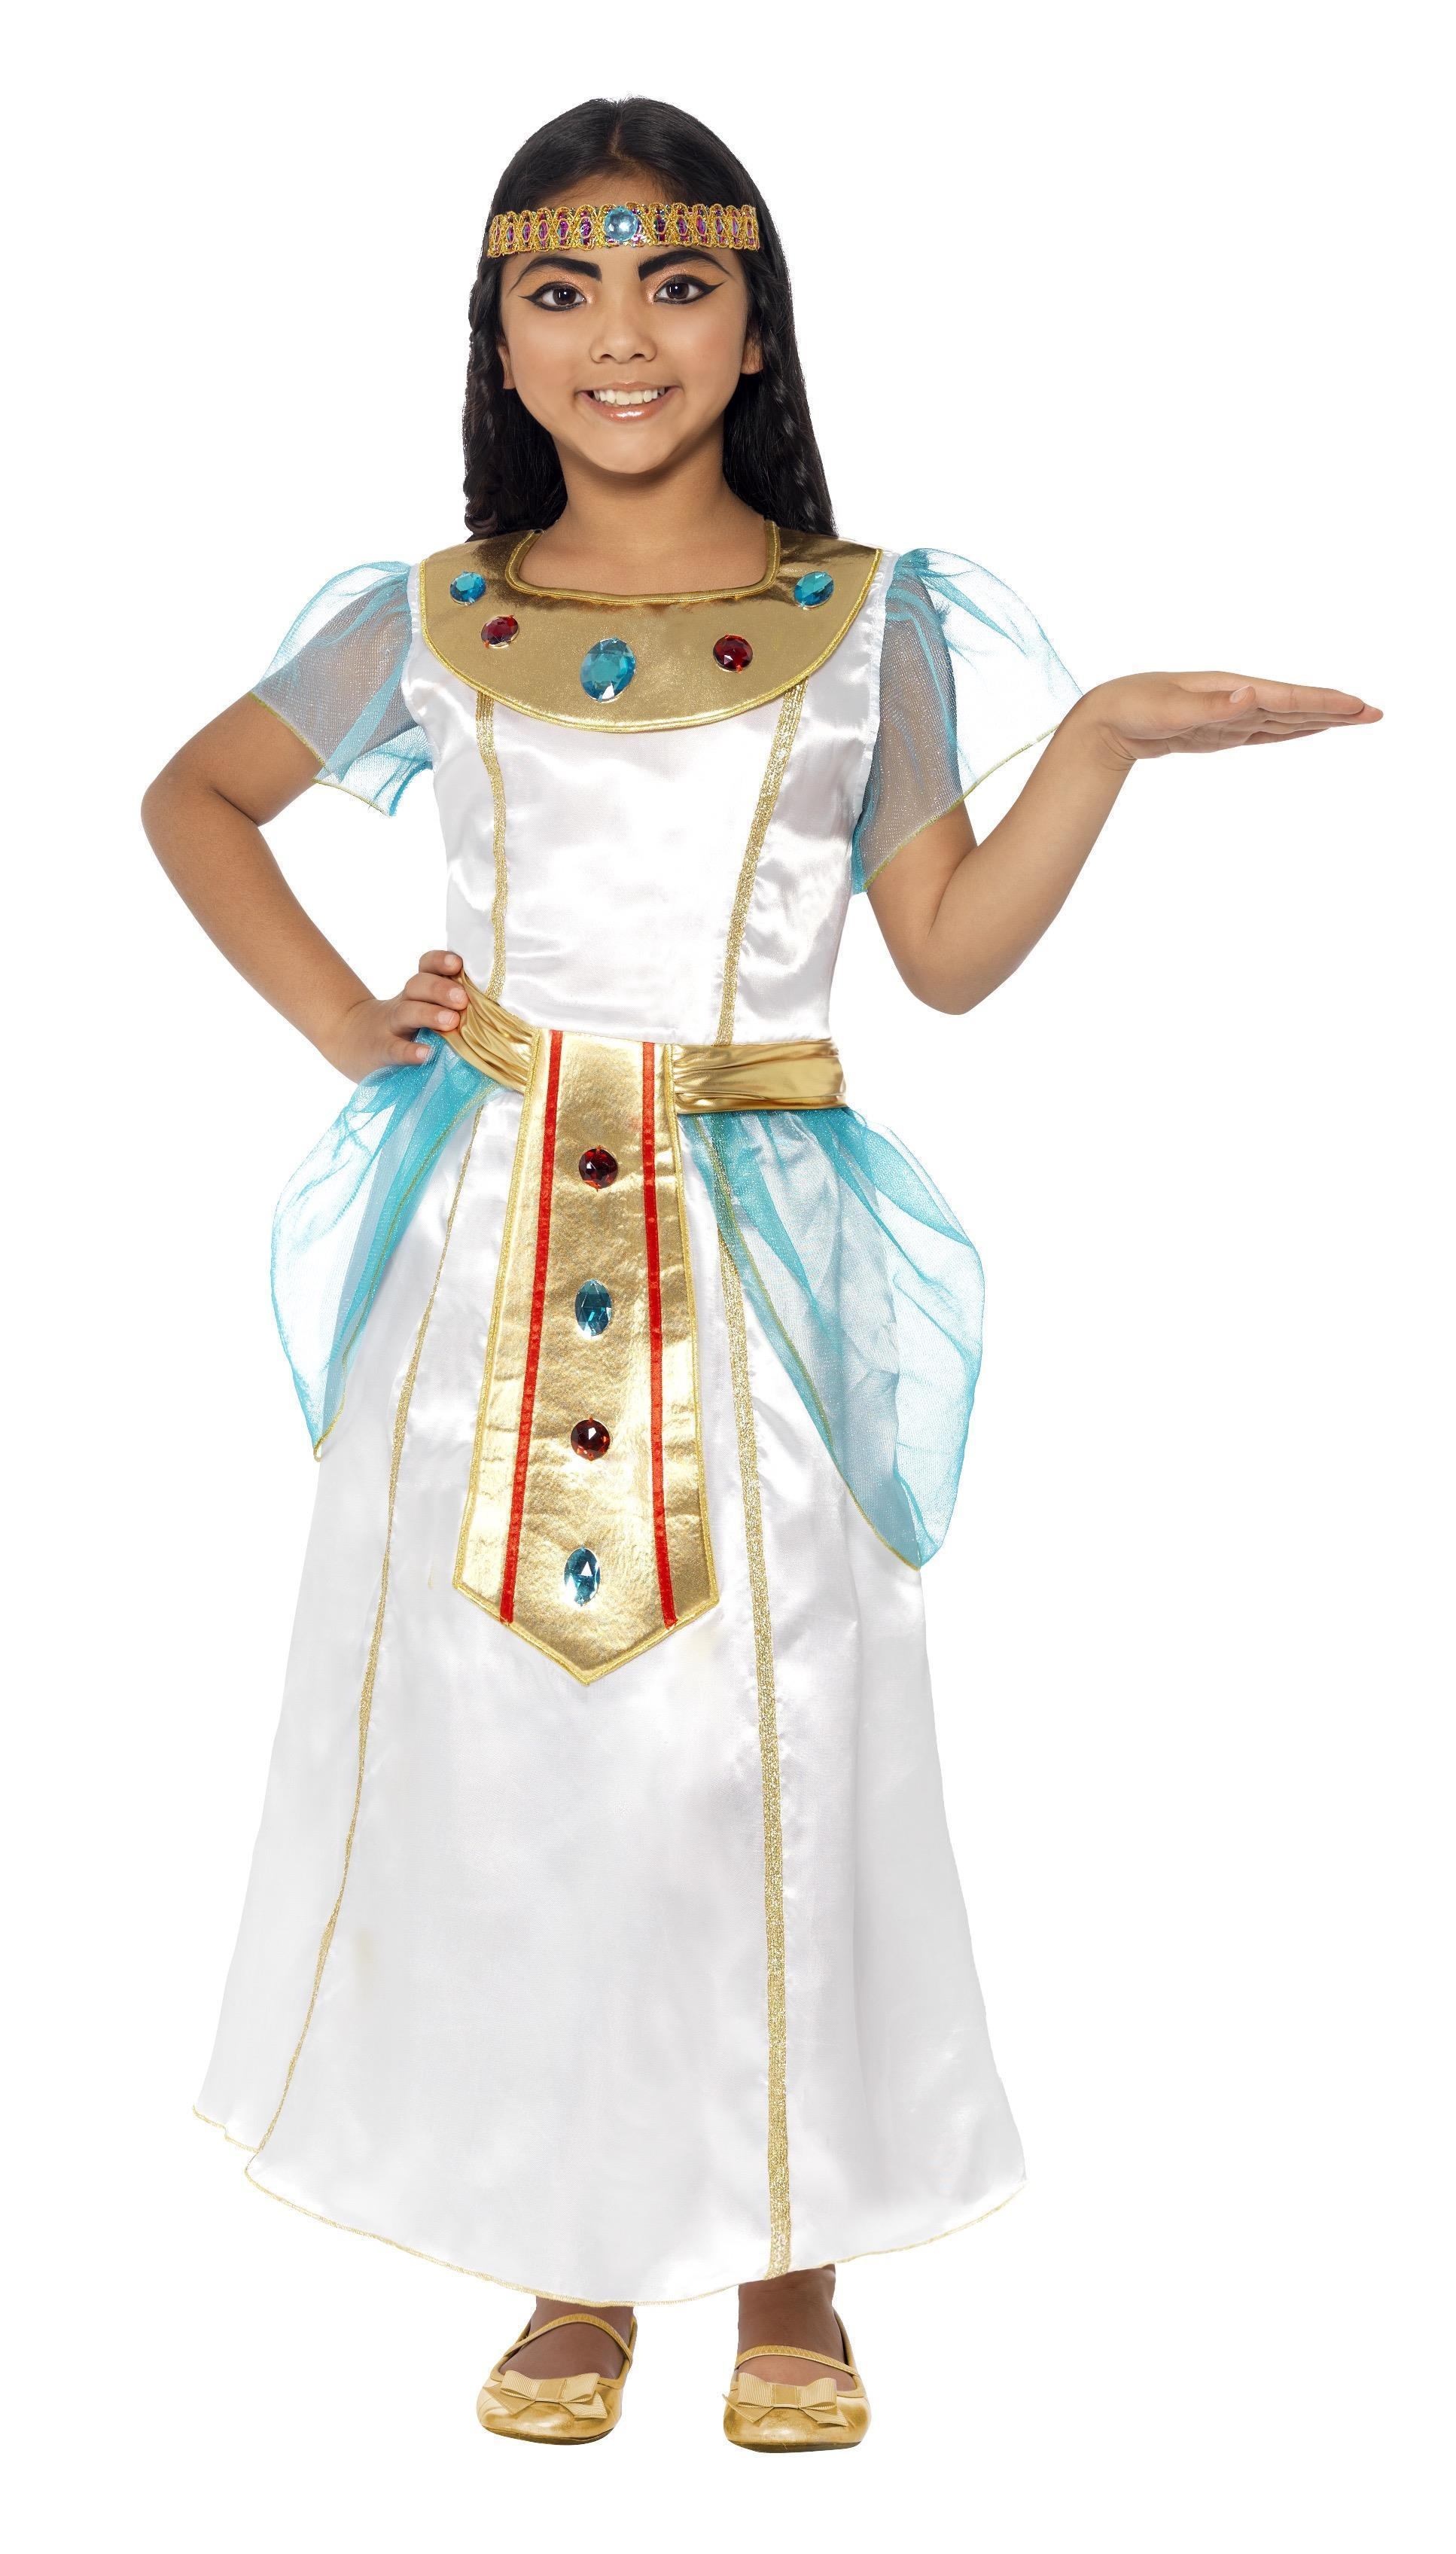 Kids Cleopatra Girl Costume Deluxe Egyptian